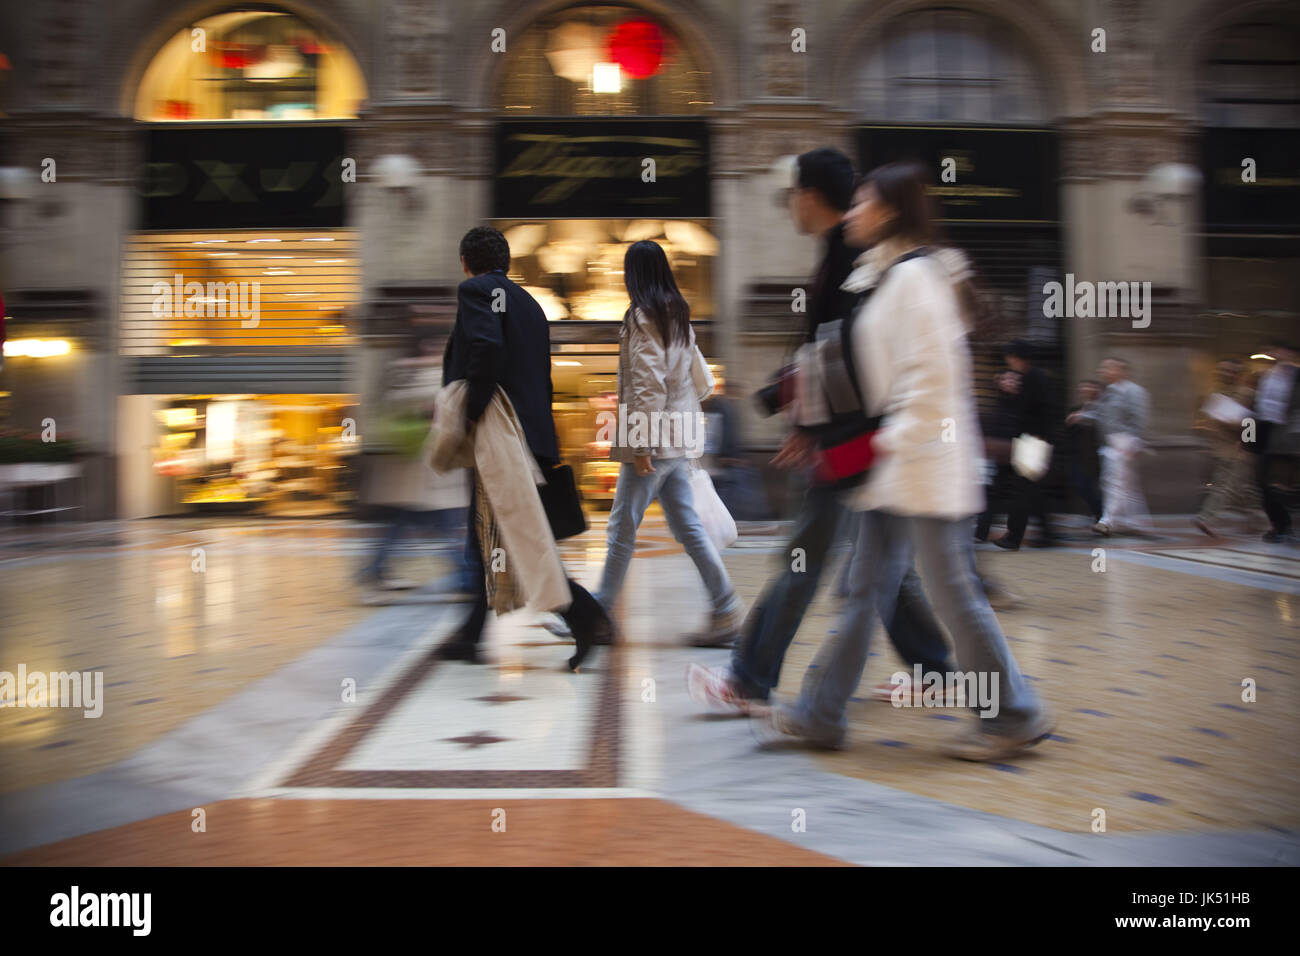 Italy, Lombardy, Milan, Galleria Vittorio Emanuele II, strolling shoppers, motion-blur, NR - Stock Image